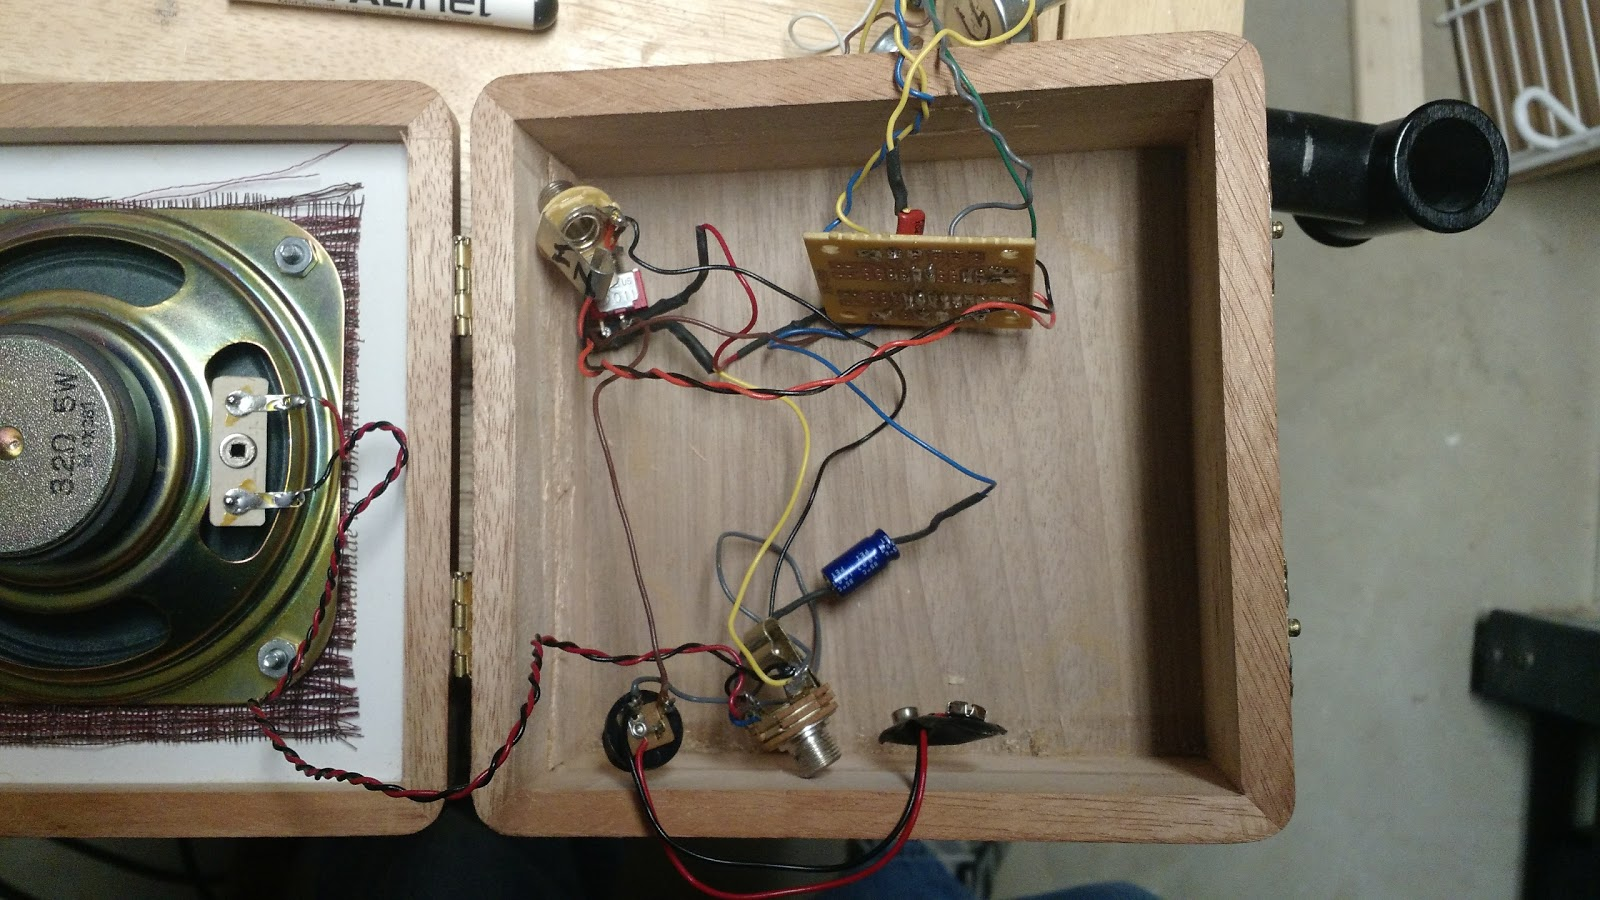 Making A Cigar Box Amp Toy Dad Circuit Board On Vintage So The Next Part Was To Line Up Connecting Nuts And Bolts Drill Those Holes Anchor Speaker That Then Let Me See Exactly How Much